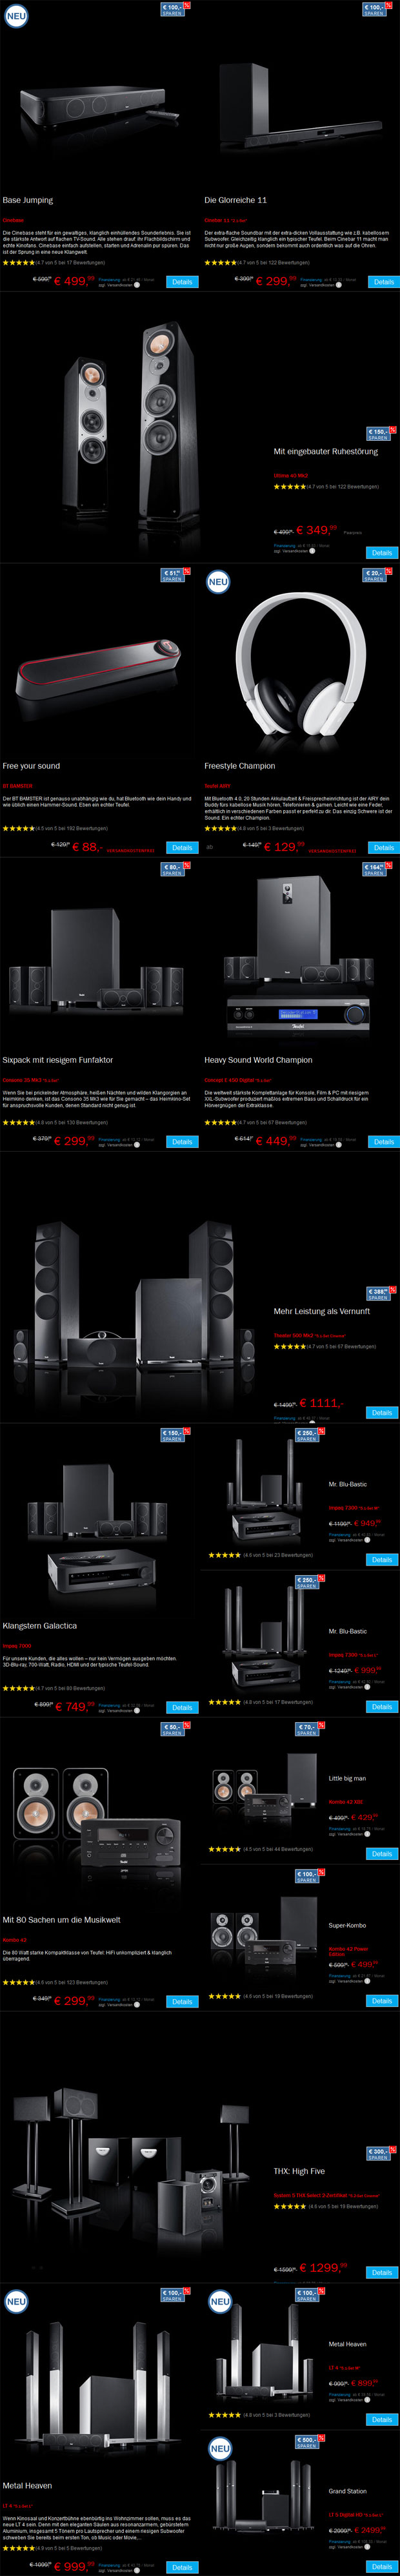 Teufel-Black-Friday-2014-Produkte